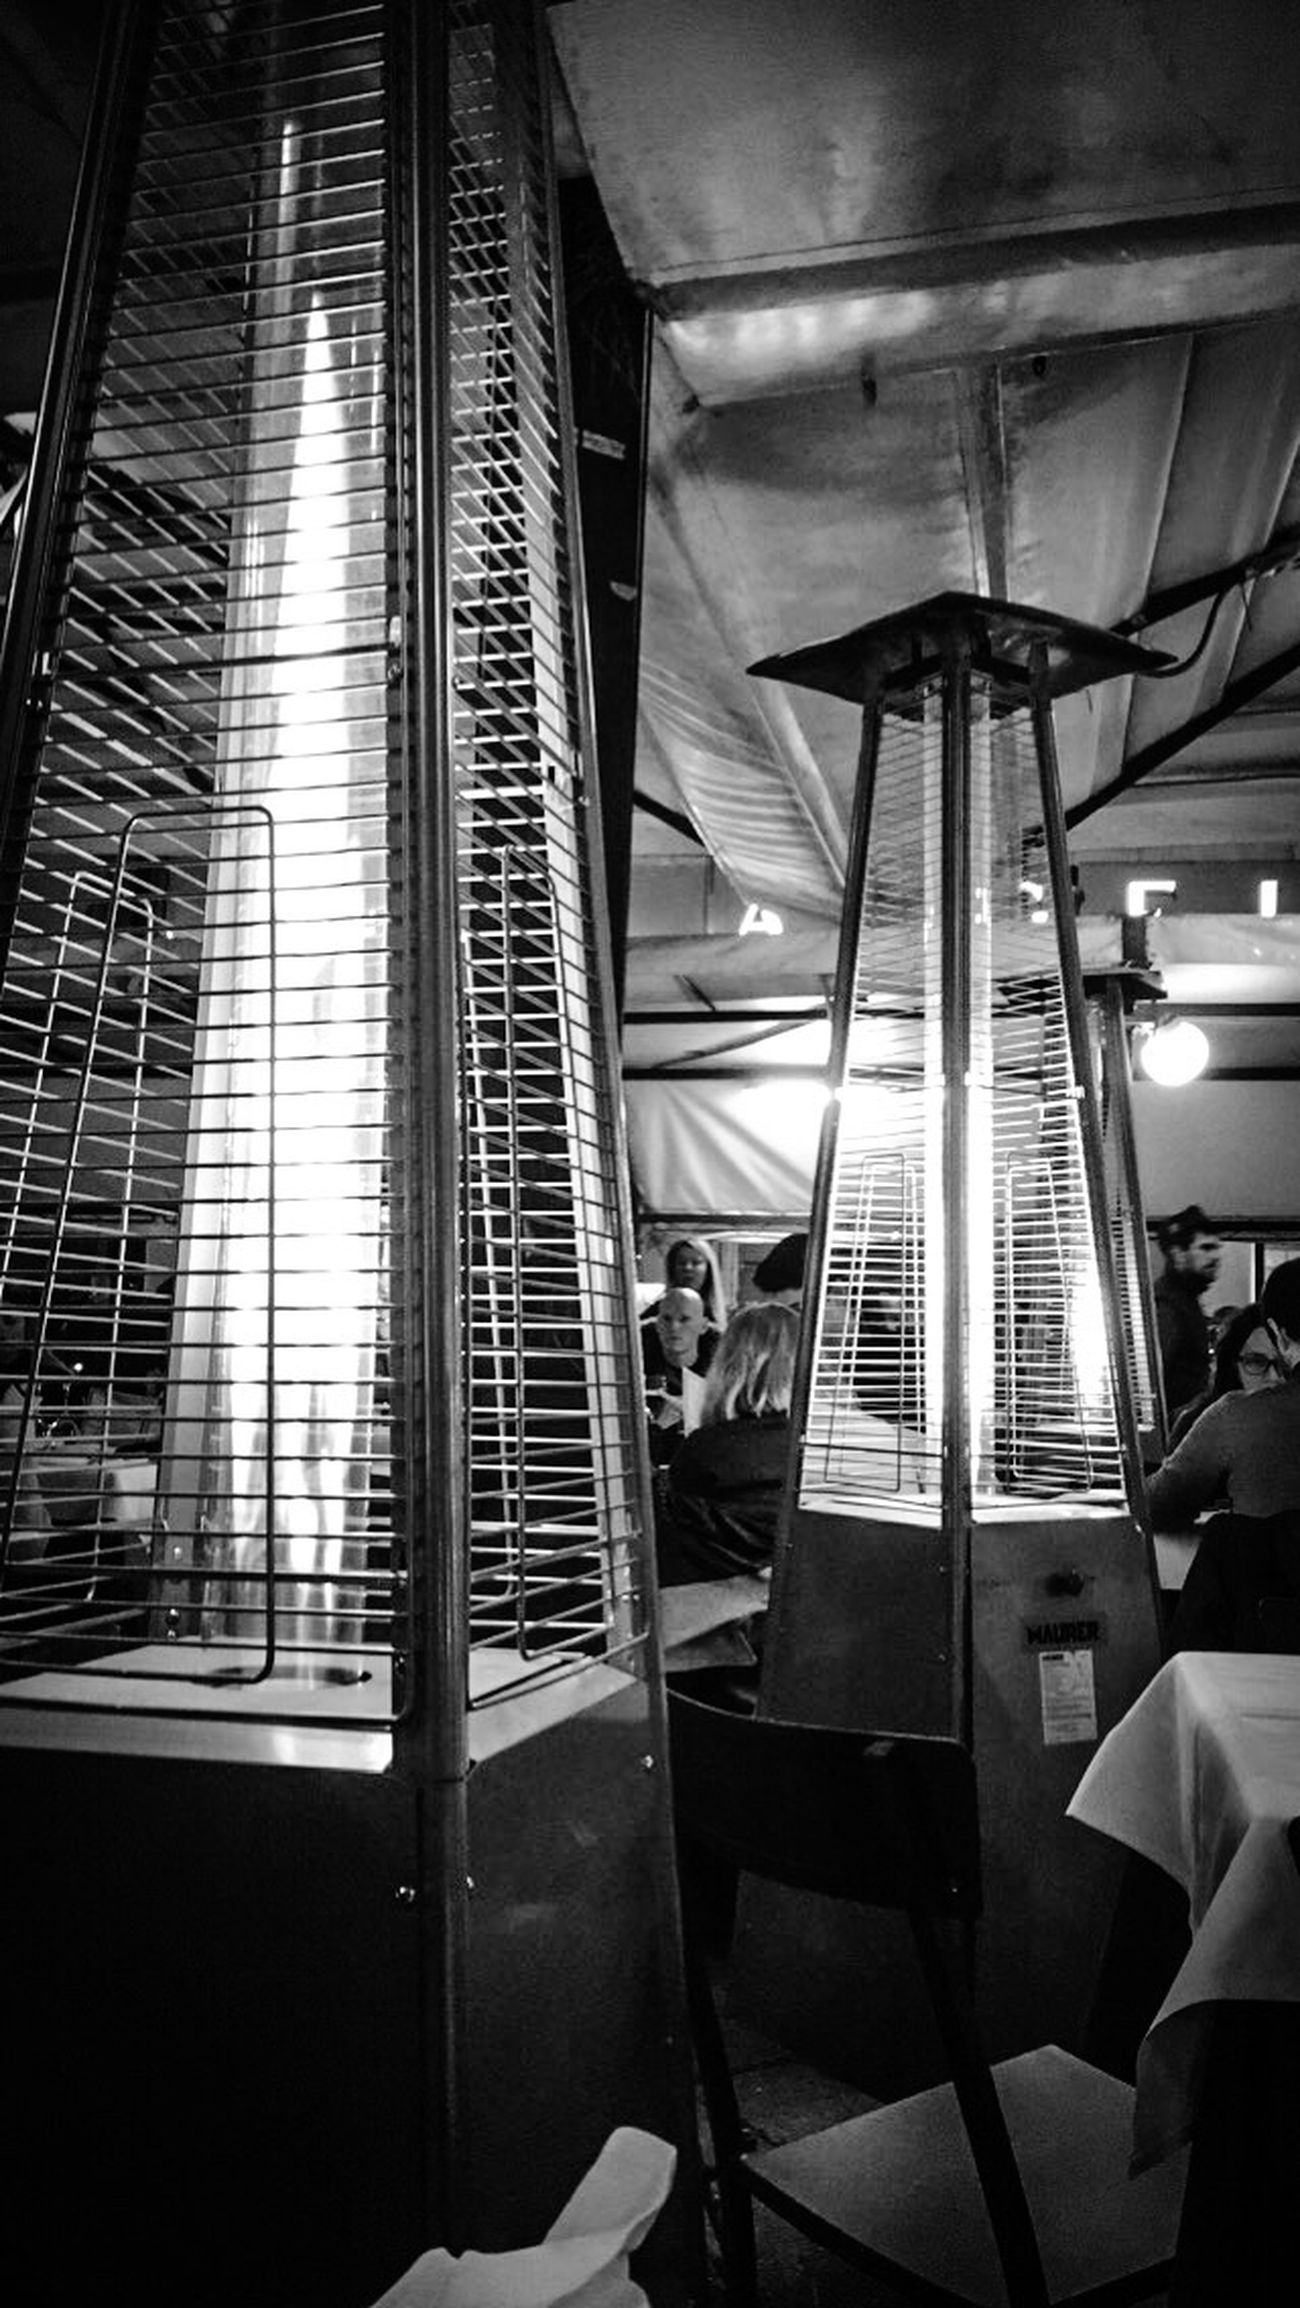 Lifestyles Architecture Flamme Nitgh Decoration Restaurant Rome Italy Luminosity Lumière Indoors